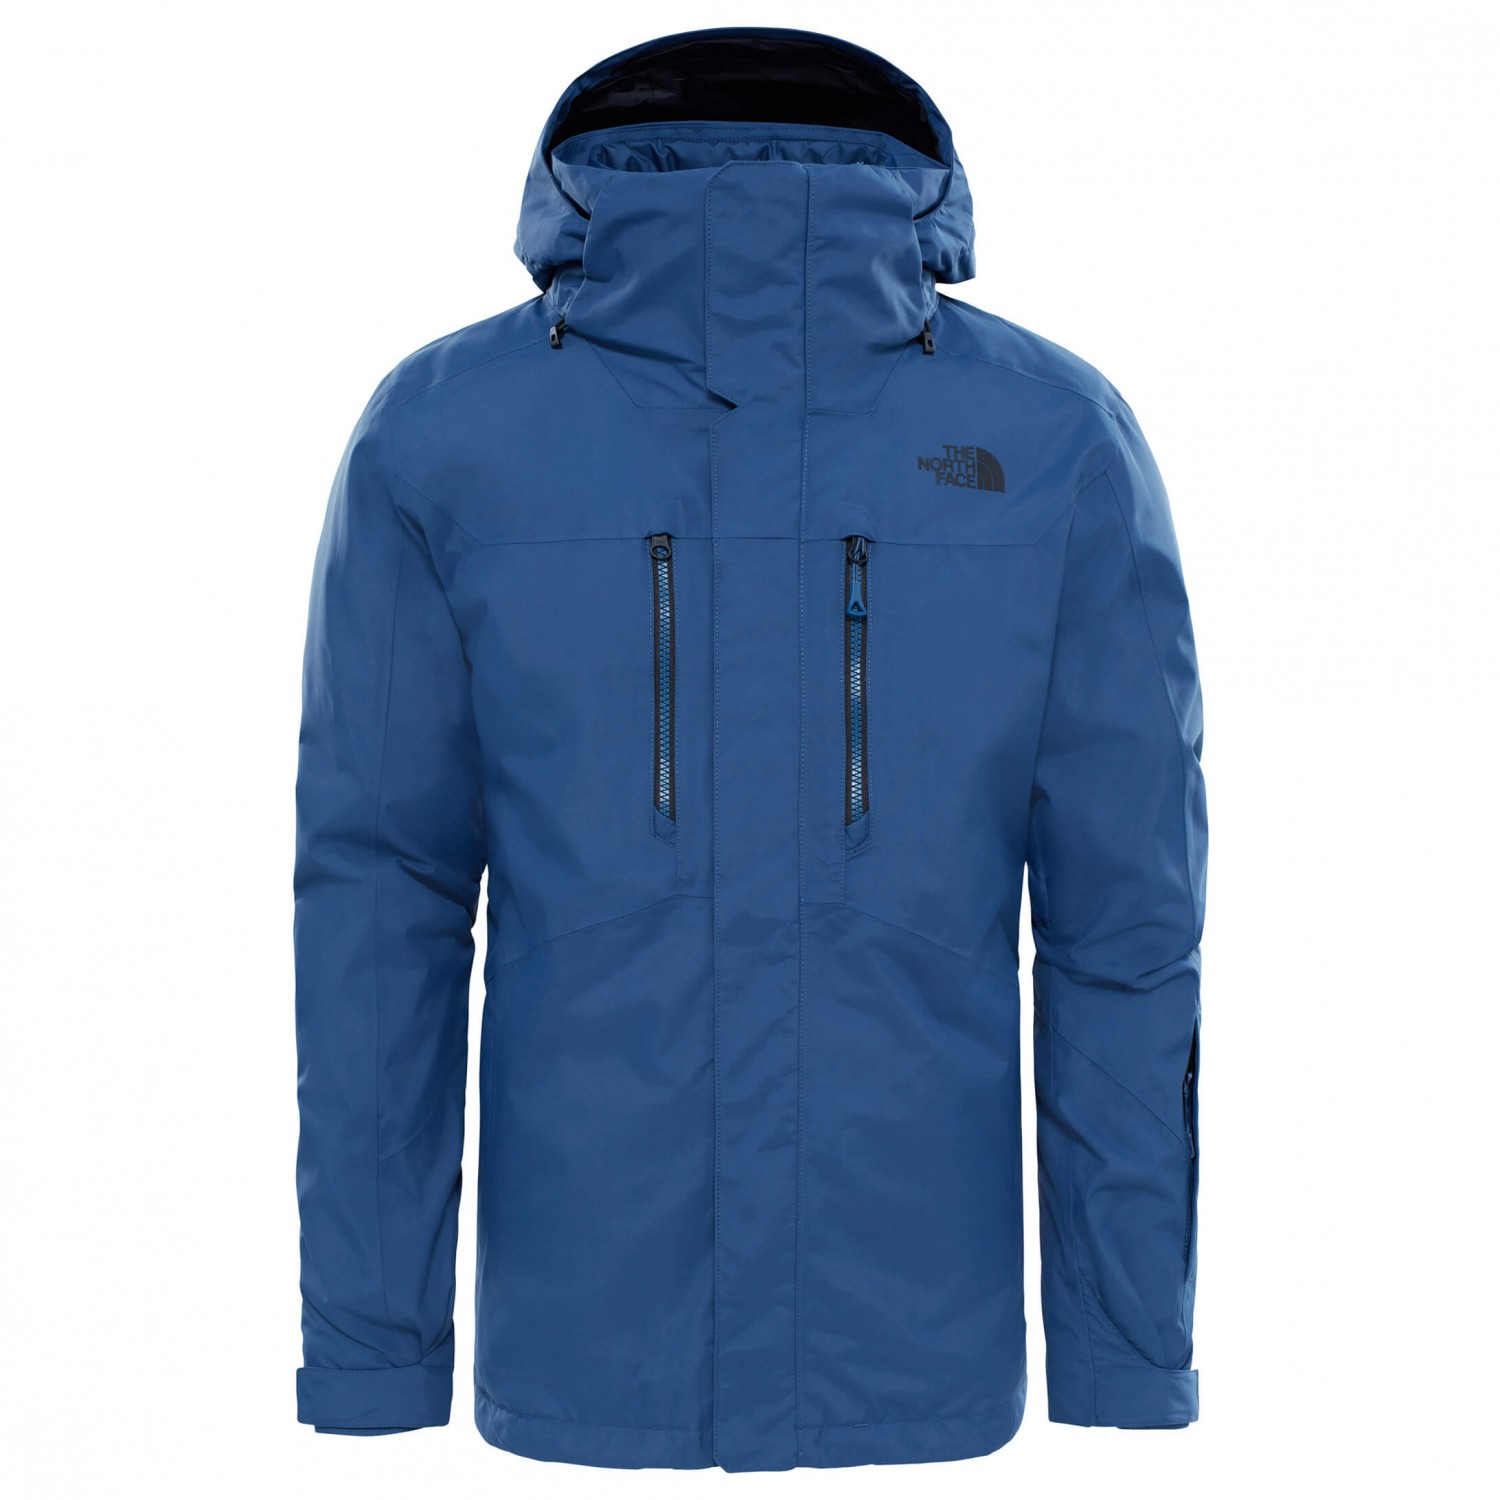 921f3f1913 ... The North Face - Clement Triclimate Jacket - Ski jacket ...